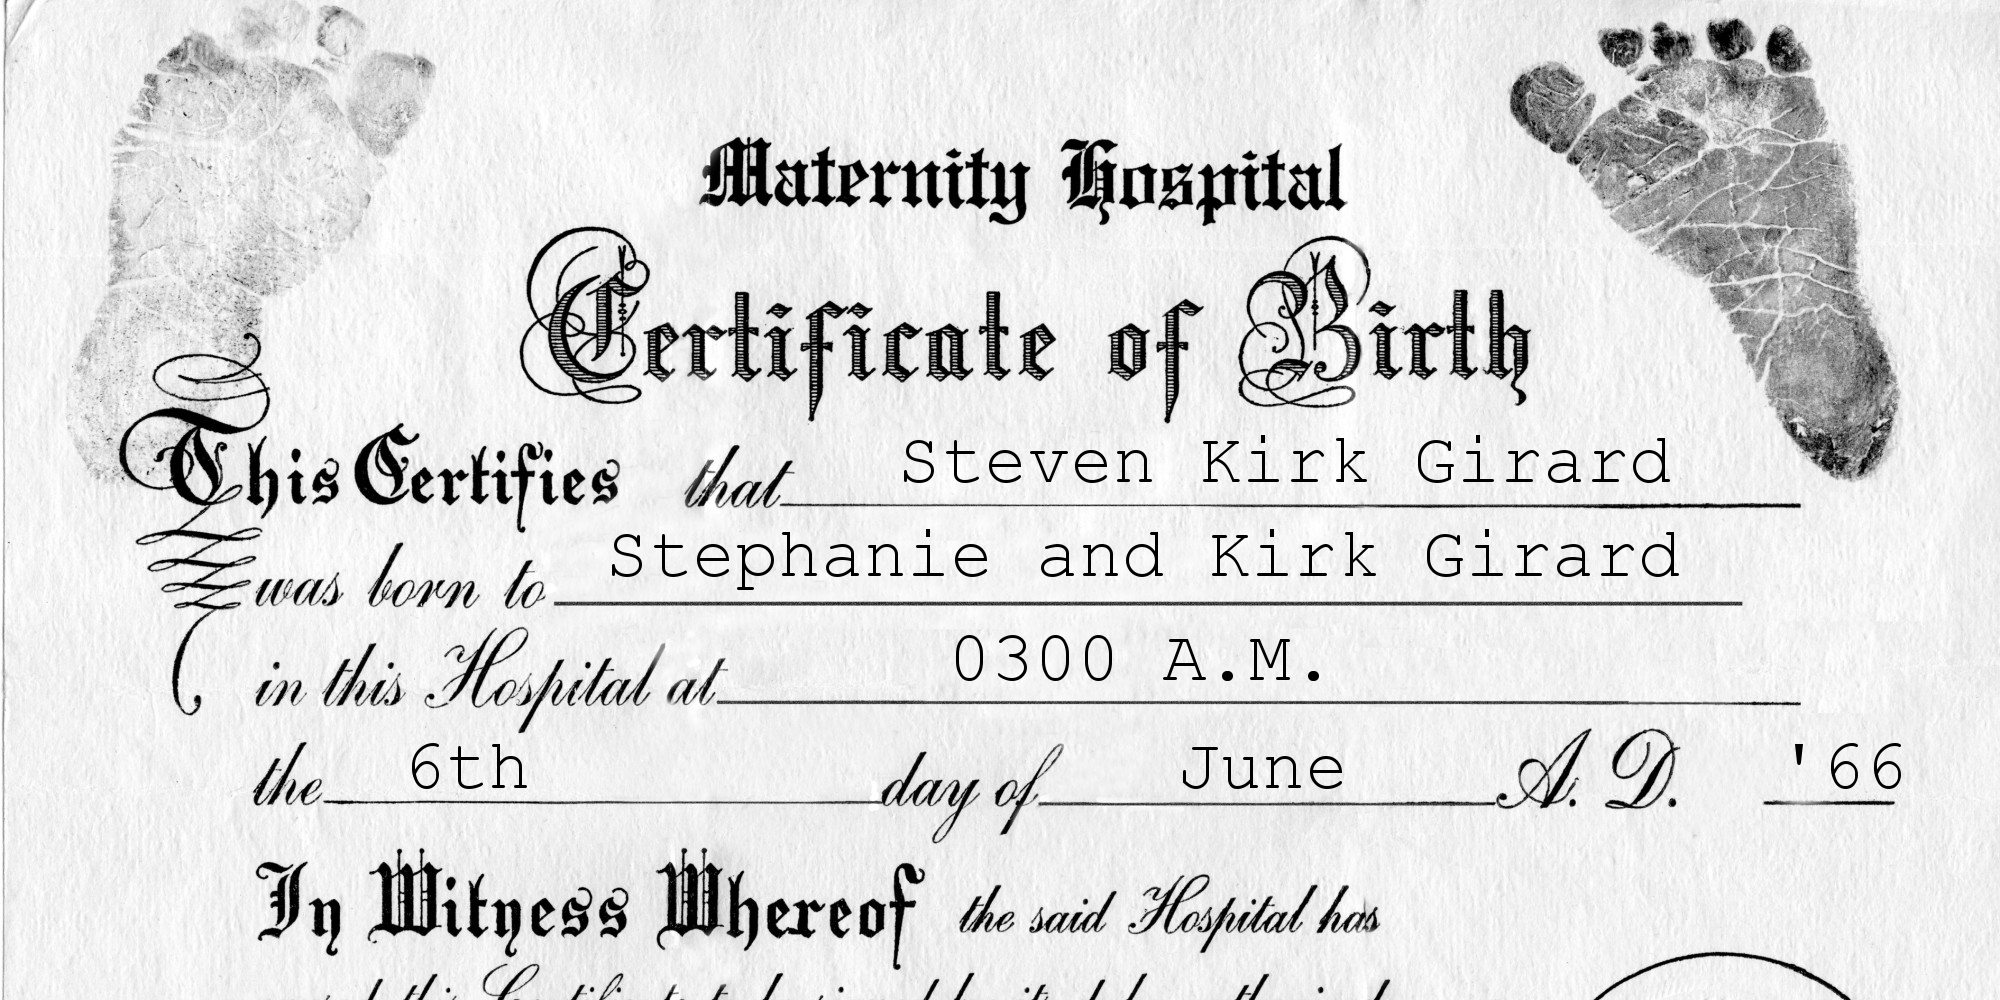 Girardbirth Certificate The Humboldt Consequential